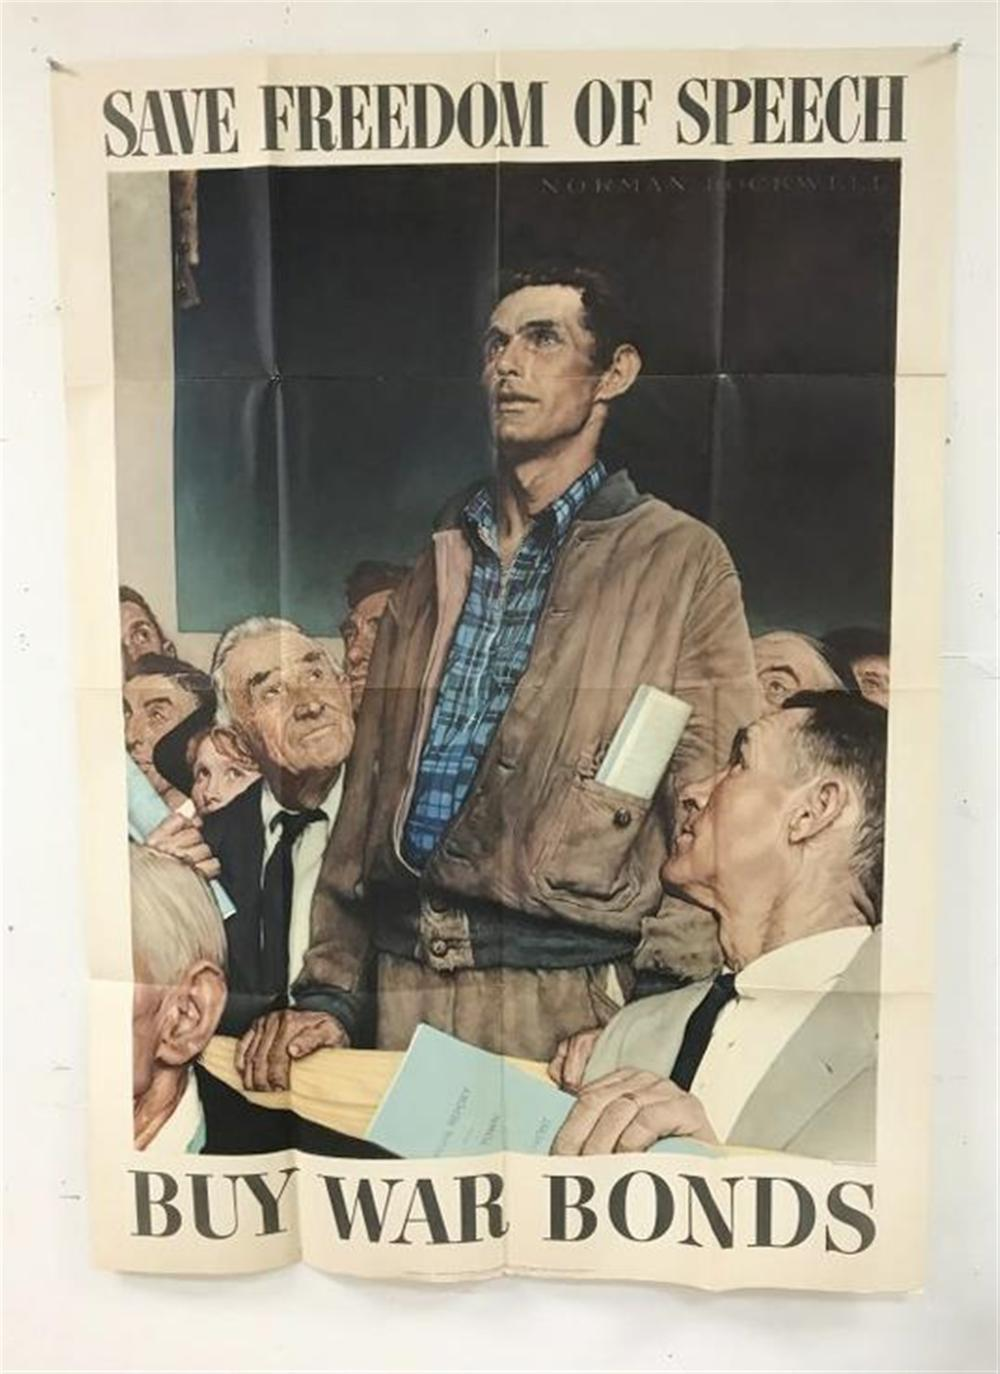 "NORMAN ROCKWELL WW II POSTER SAVE FREEDOM OF SPEECH BUY WAR BONDS, SOME SMALL CREASE SEPARATION, OVERALL NICE. MEASURES 55 1/2"" X 40""."